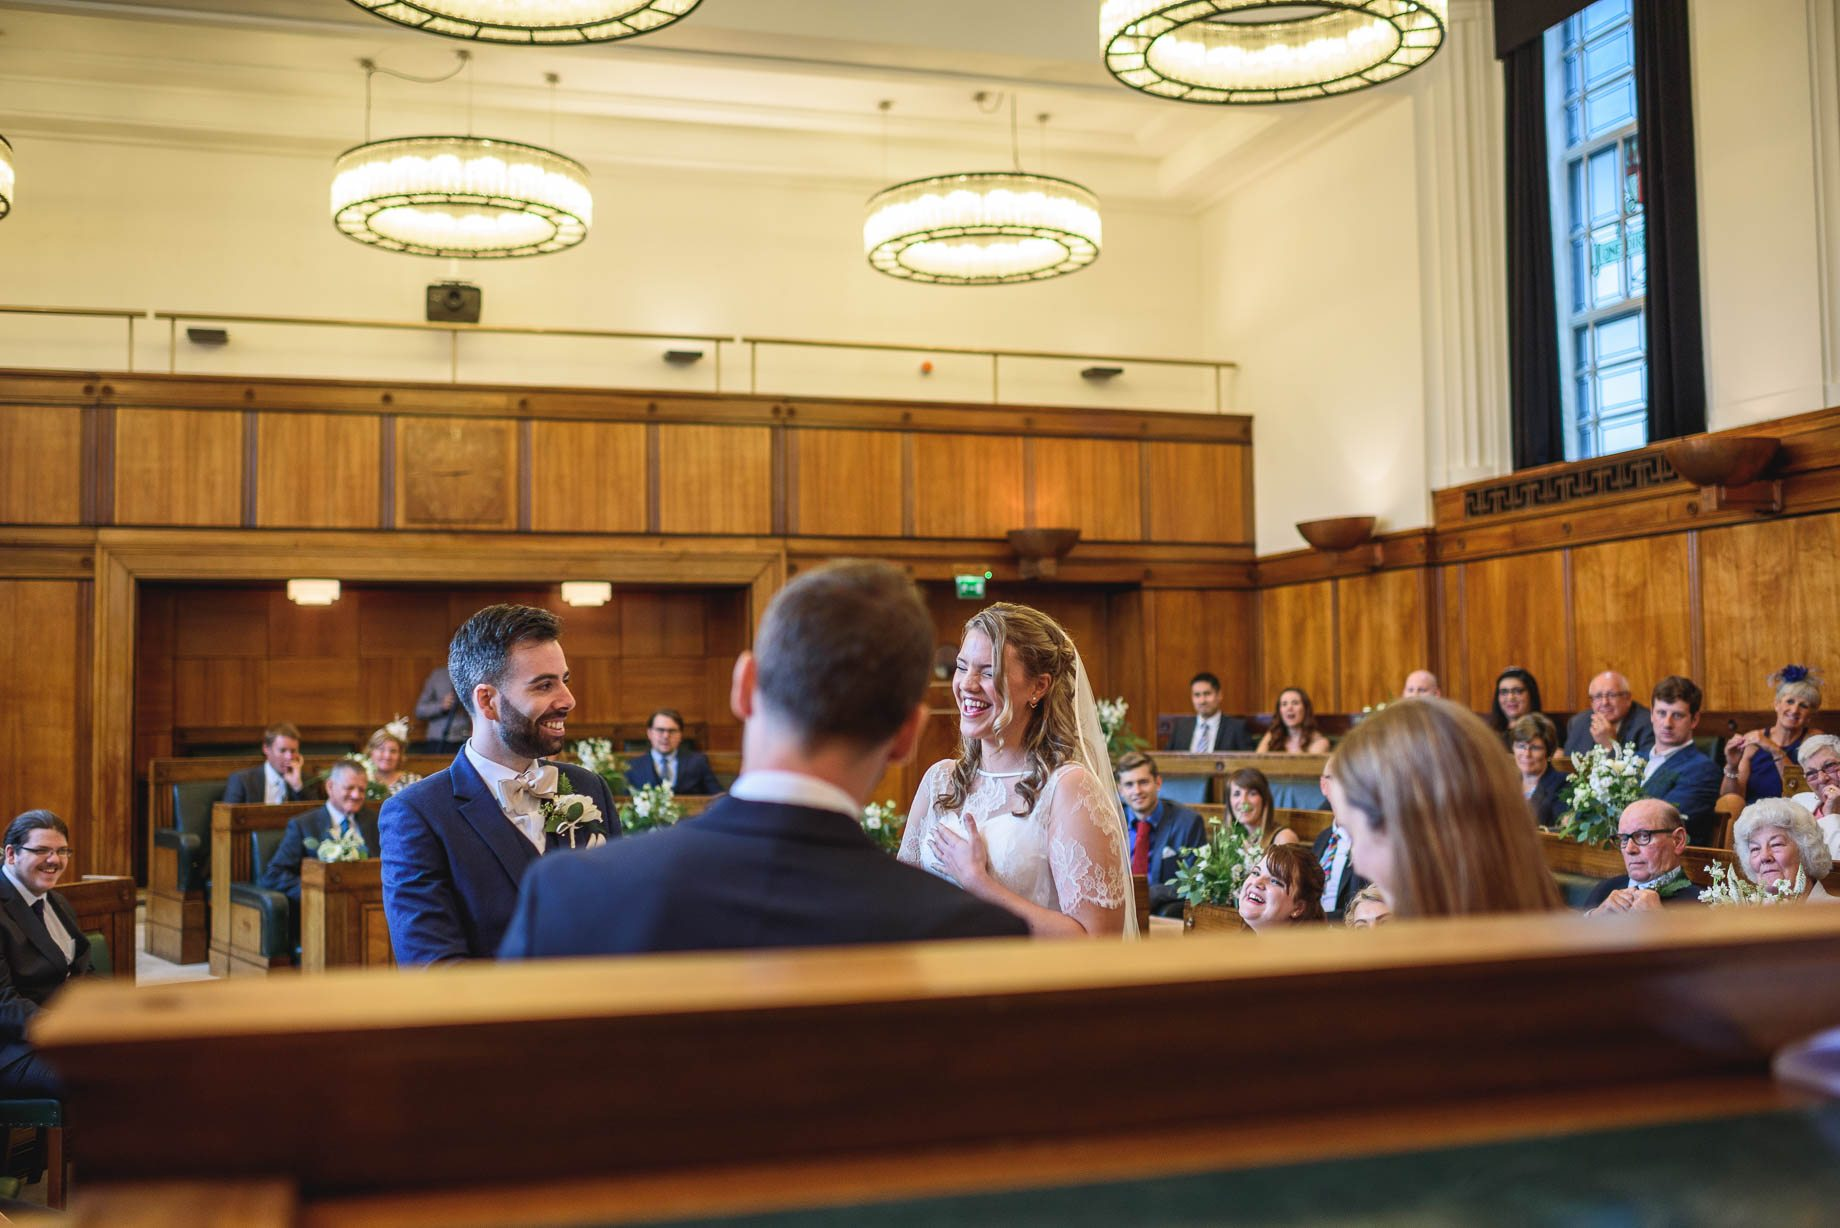 London Wedding Photography - Guy Collier Photography - LJ + Russell (57 of 155)